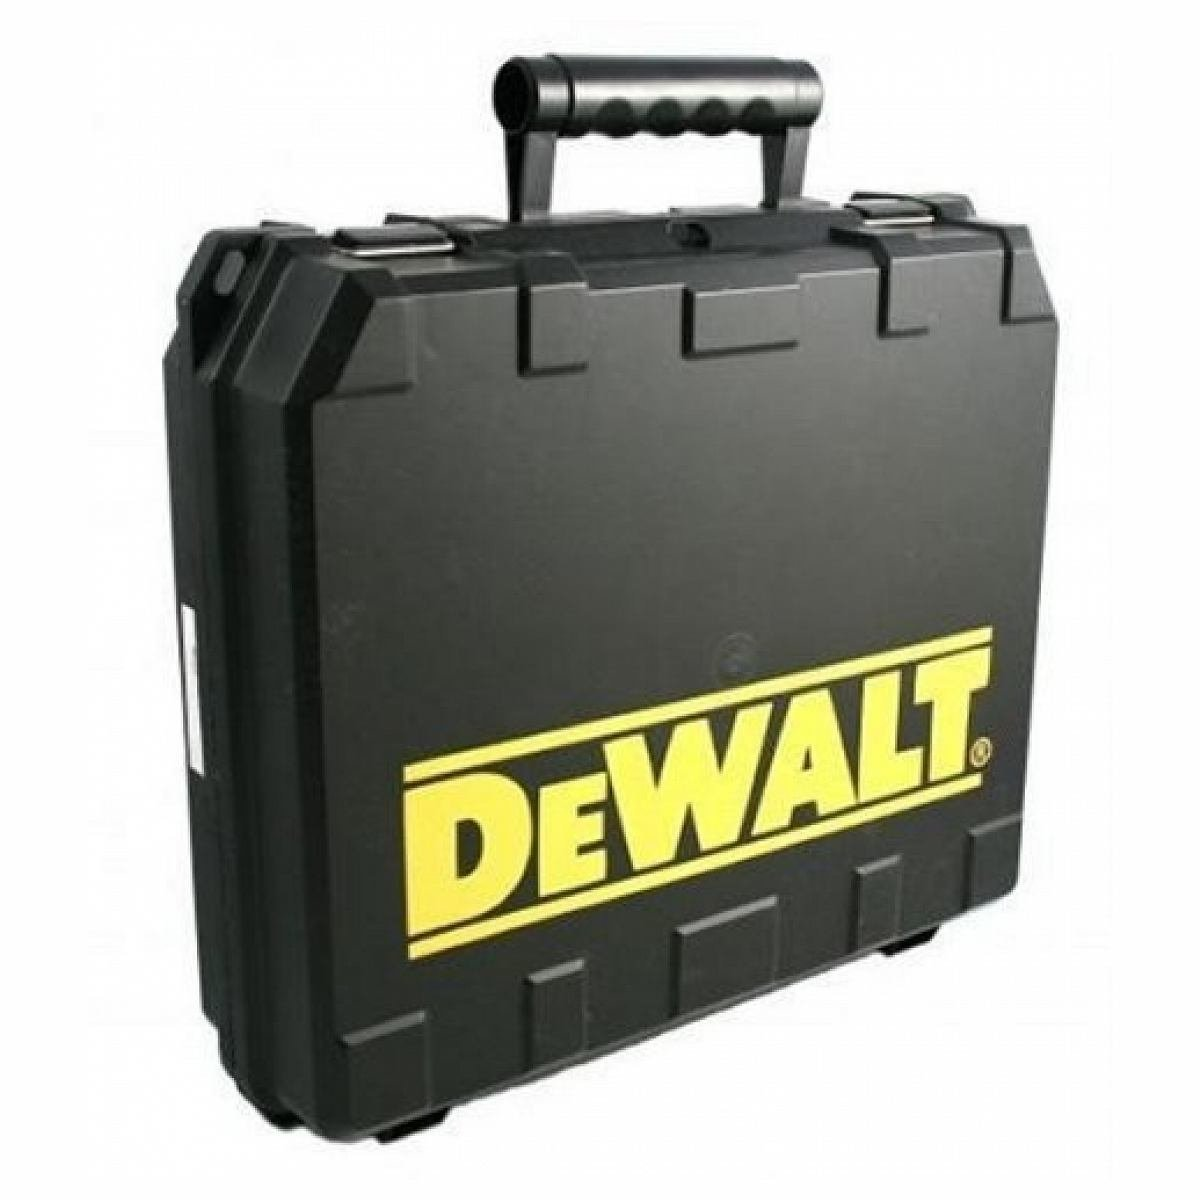 Dewalt DC330 DCS331 Jig Saw Tool Case 581580-03 by BLACK DECKER